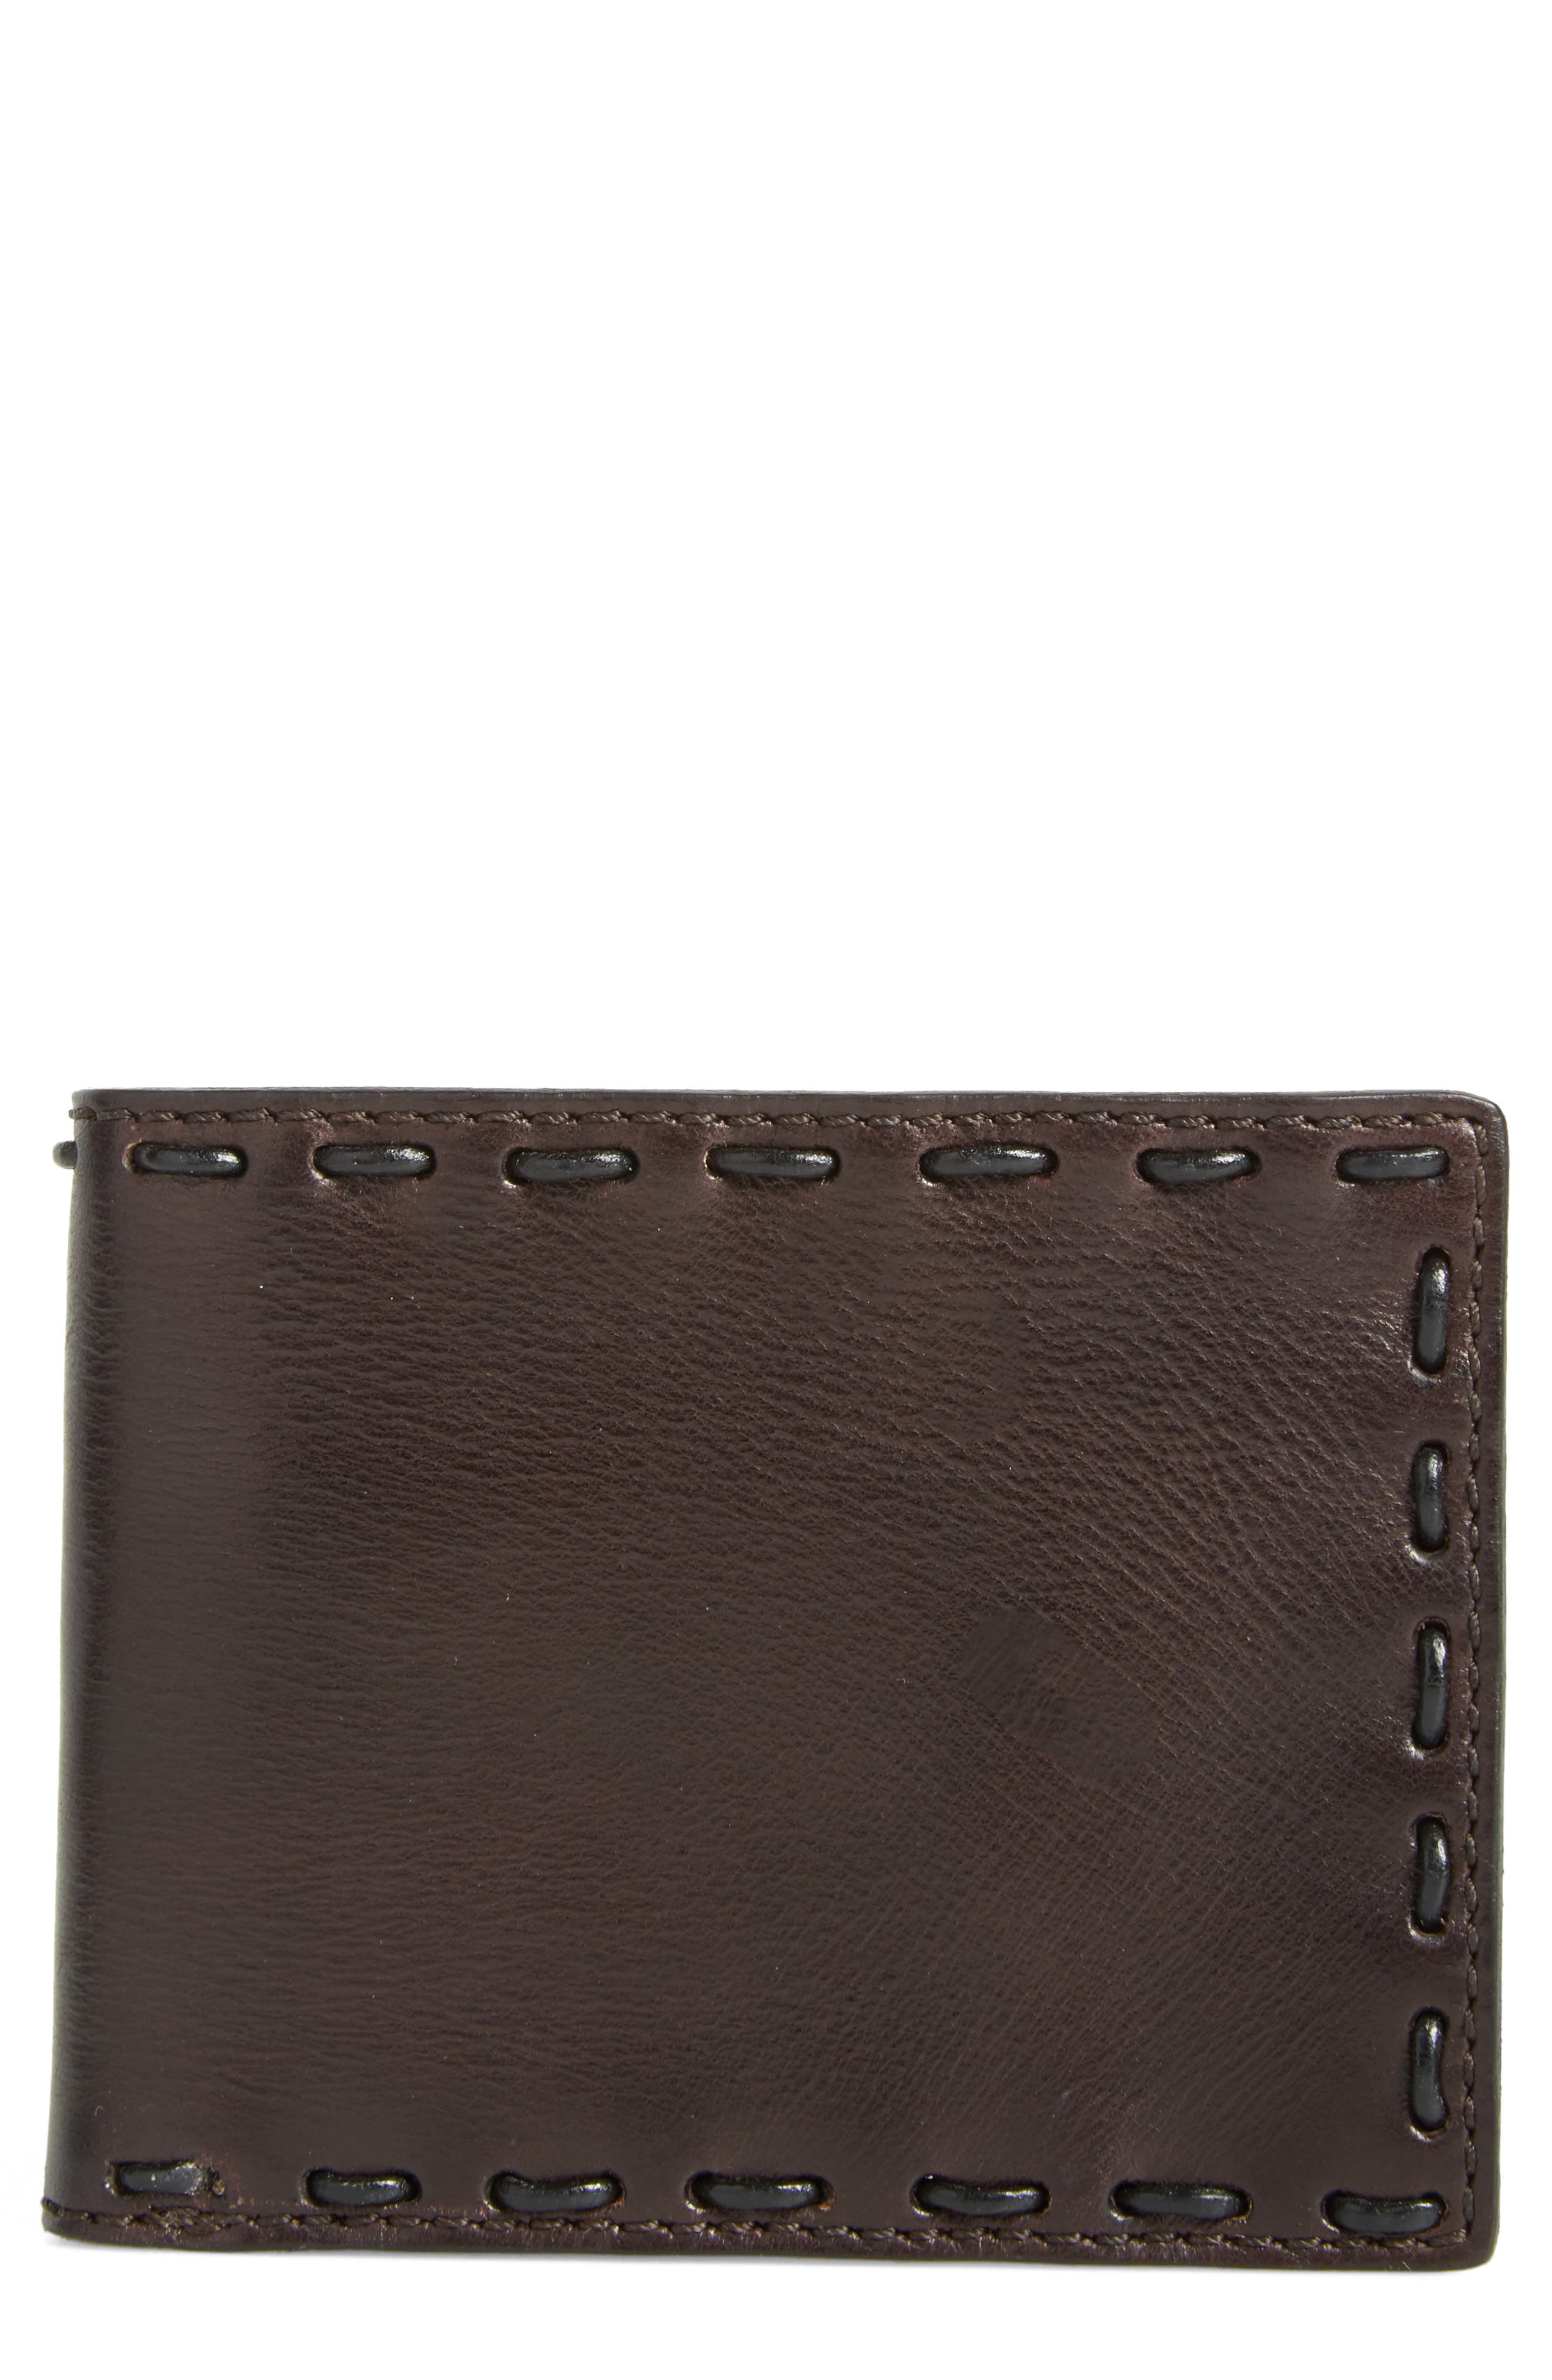 Pickstitch Leather Bifold Wallet,                             Main thumbnail 1, color,                             Chocolate